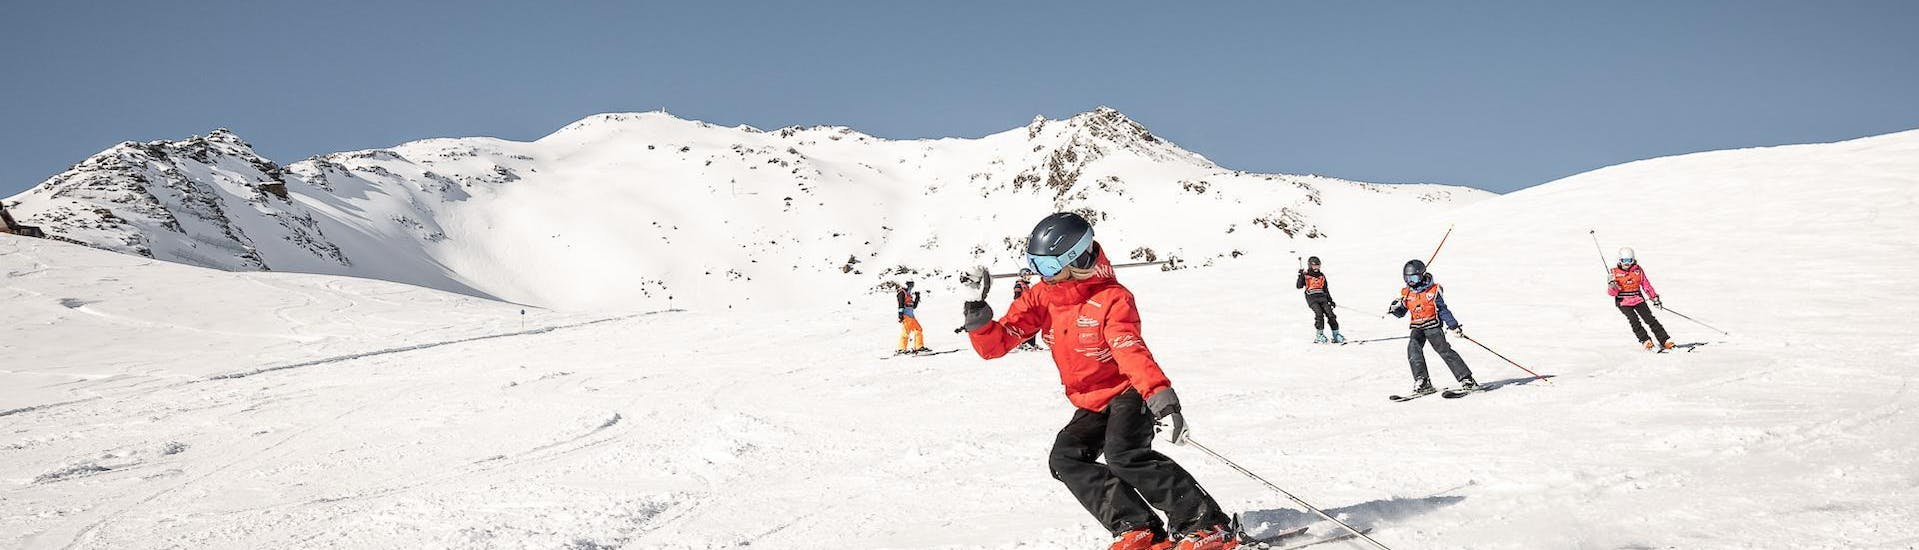 """A ski instructor is explaining the basic techniques of skiing to some young skiers during the Kids Ski Lessons """"All-Inclusive"""" (4-8 years) - All Levels organized by the ski school Ski & Snowboardschool Vacancia in the ski resort of Sölden."""